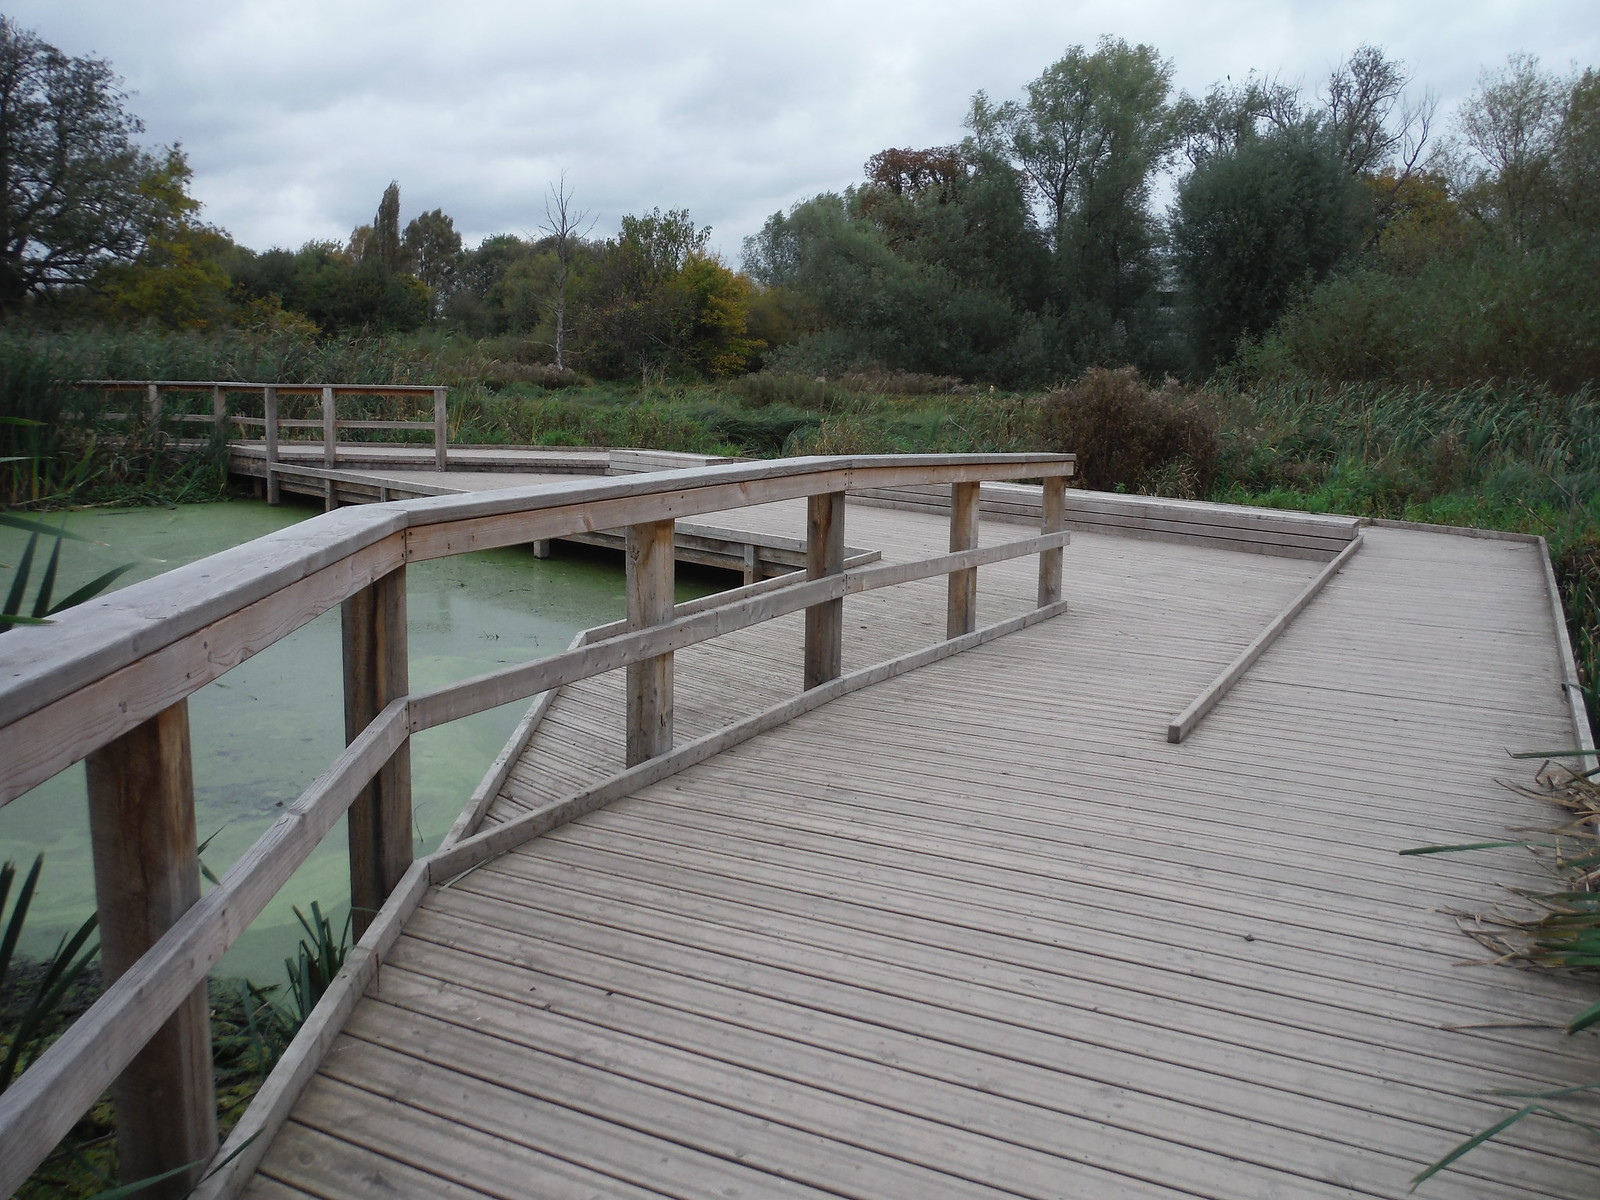 Boardwalk through Wetlands, Morden Hall Park SWC Walk Short 13 - Morden Hall Park and Merton Abbey Mills